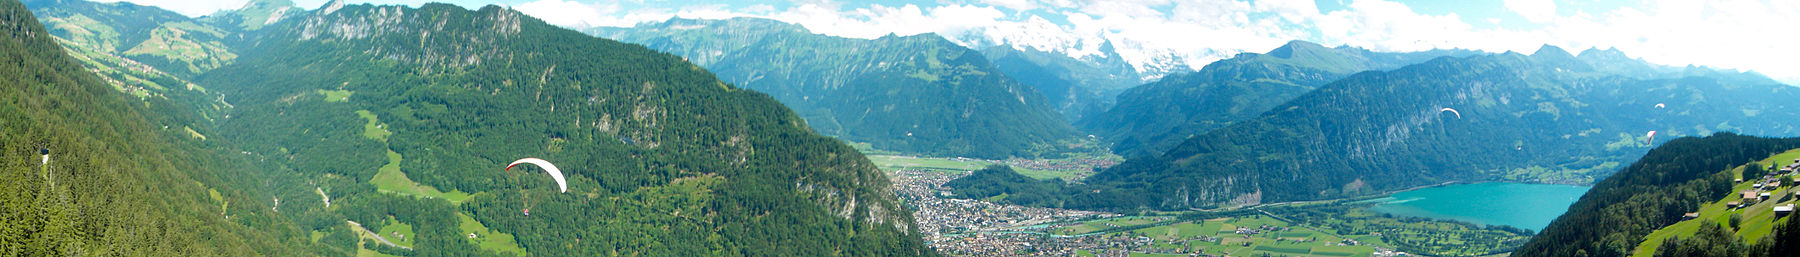 Interlaken banner panorama.jpg